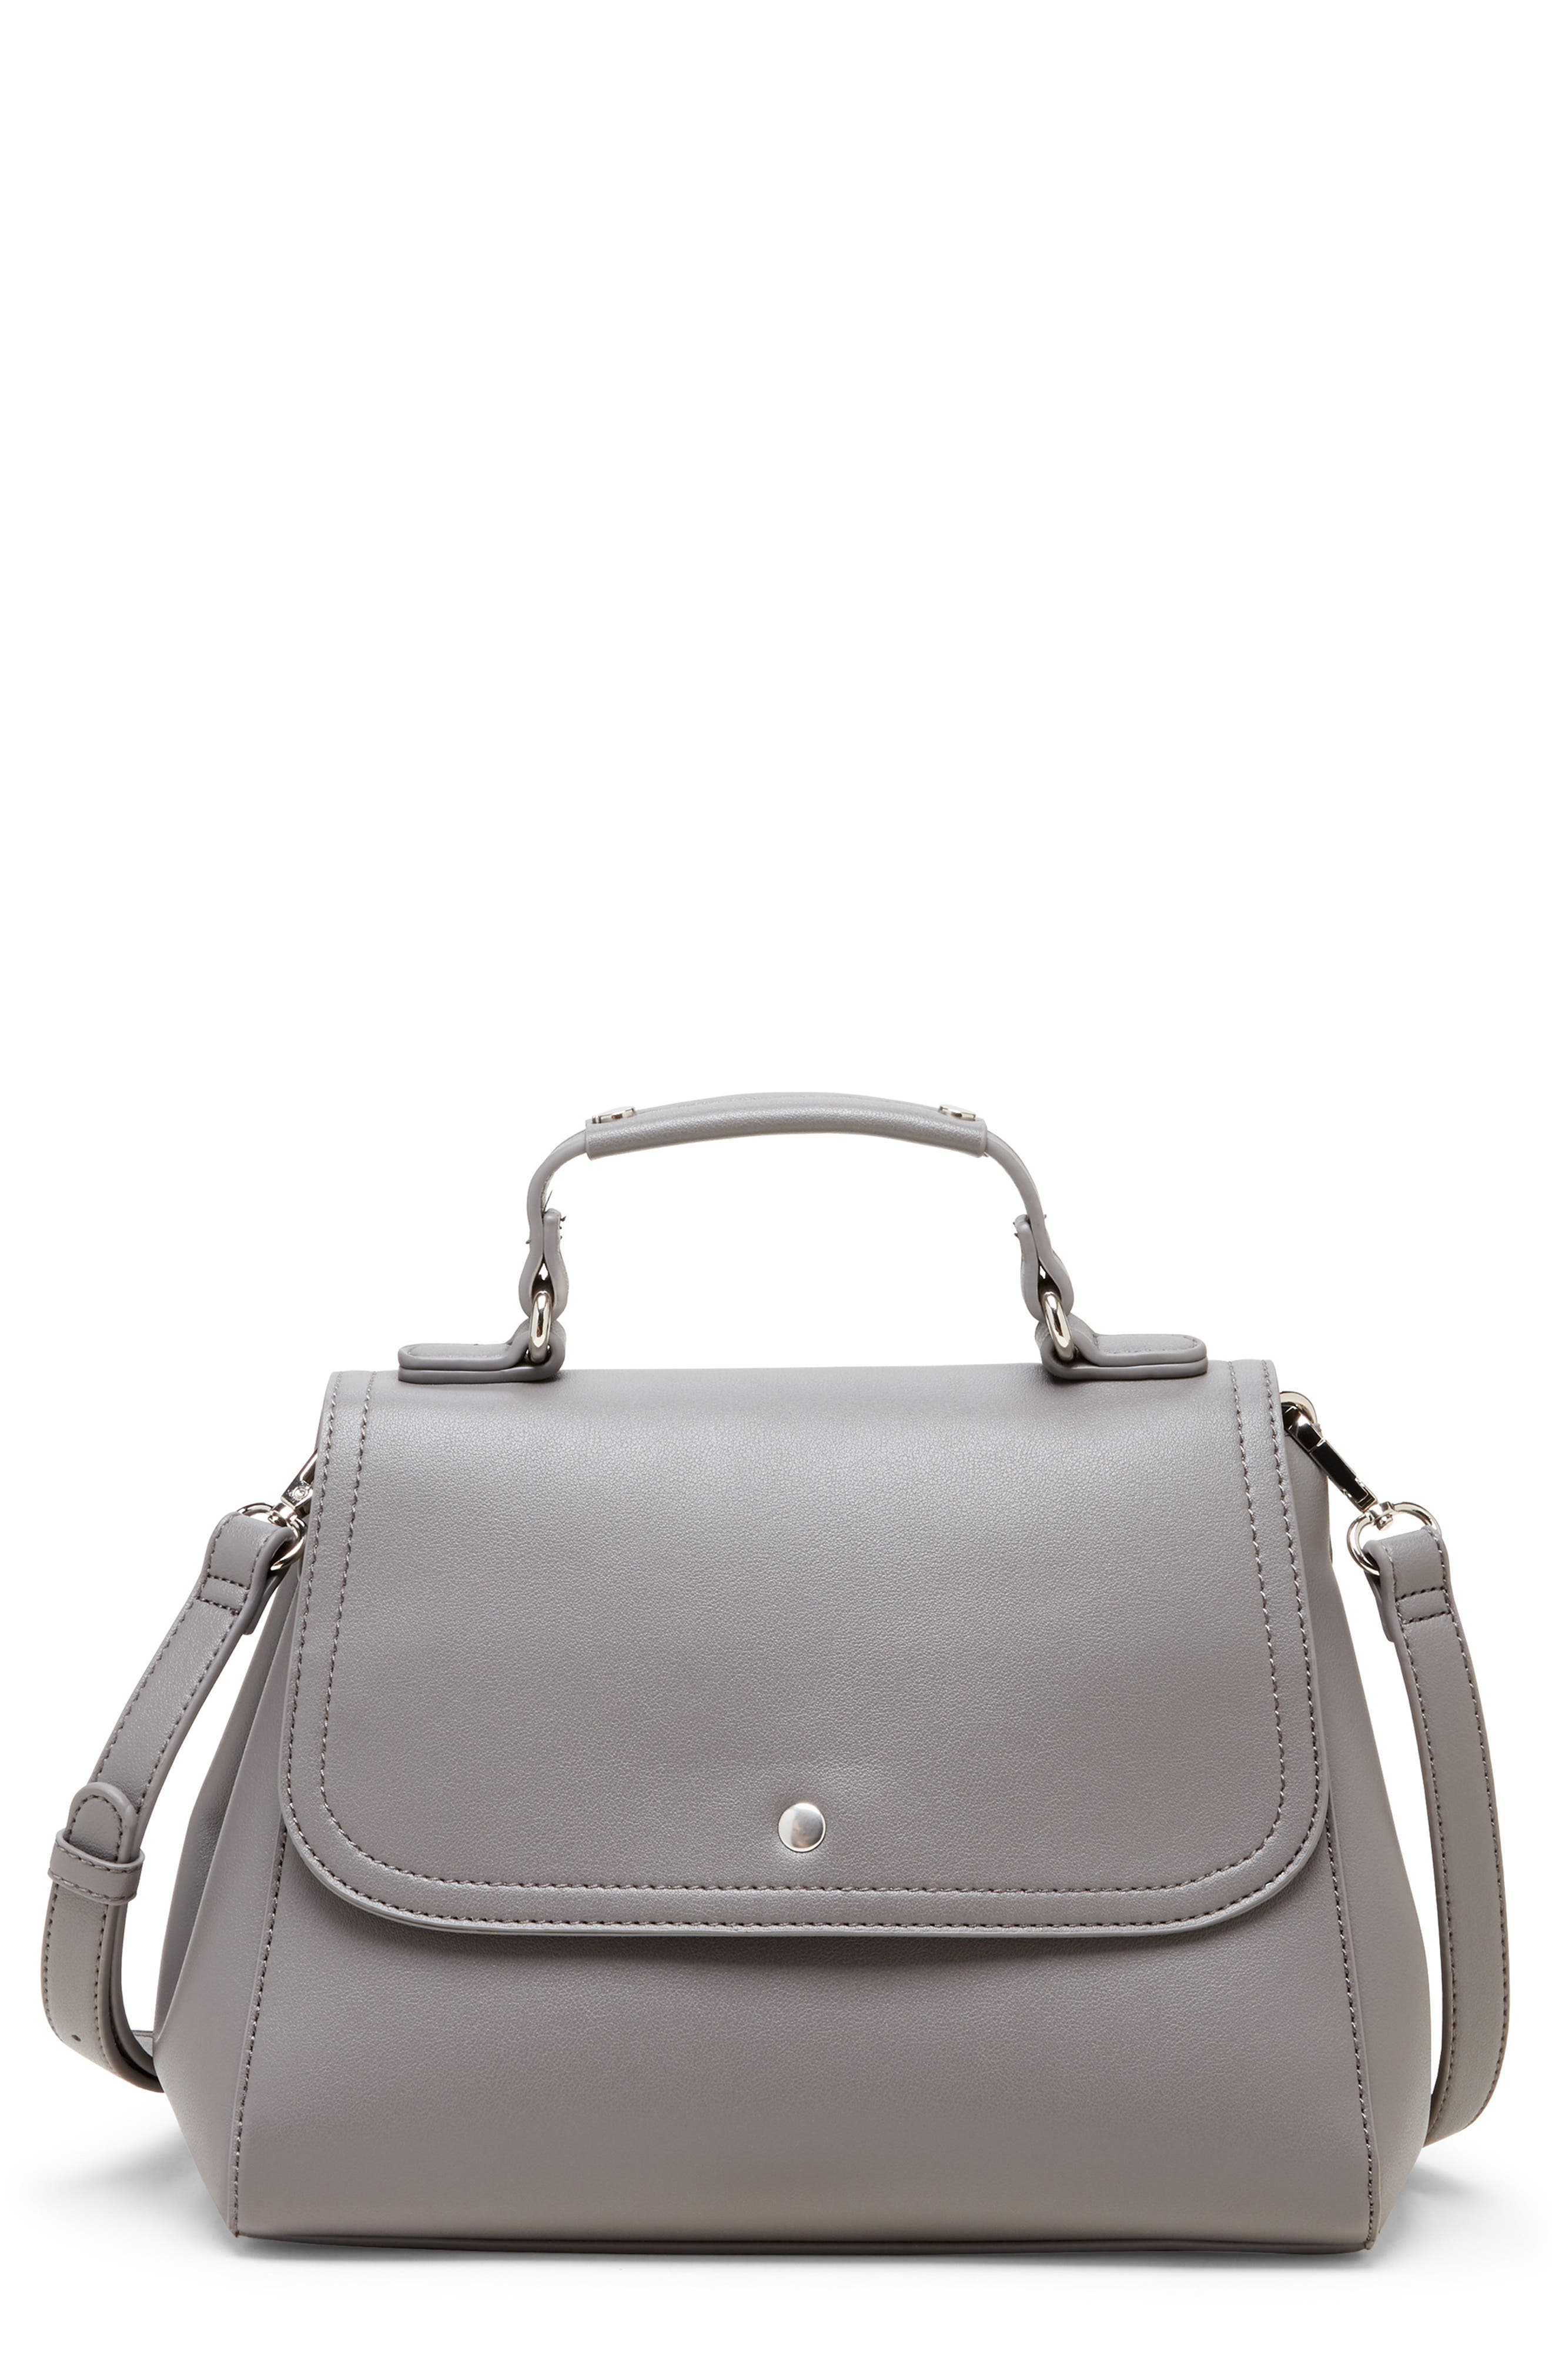 SOLE SOCIETY, Hingi Faux Leather Satchel, Main thumbnail 1, color, GREY